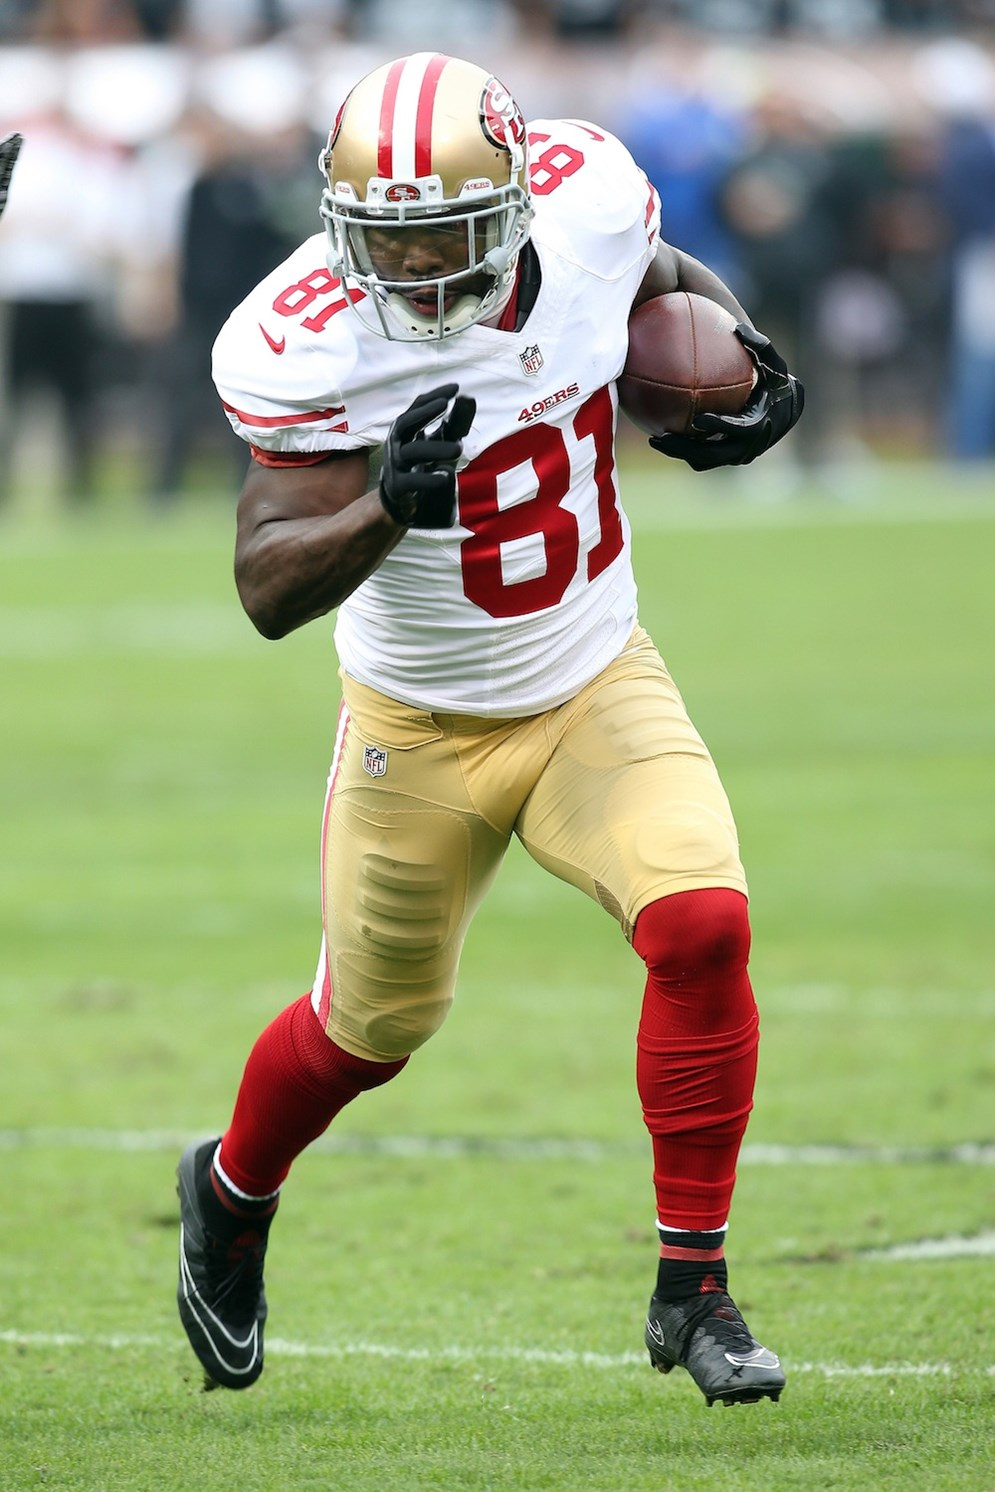 San Francisco 49ers wide receiver Anquan Boldin (81) against the Oakland Raiders during an NFL game at O.com Coliseum in Oakland, Calif. on Sunday, Dec. 7, 2014. (AP Photo/Michael Zito)